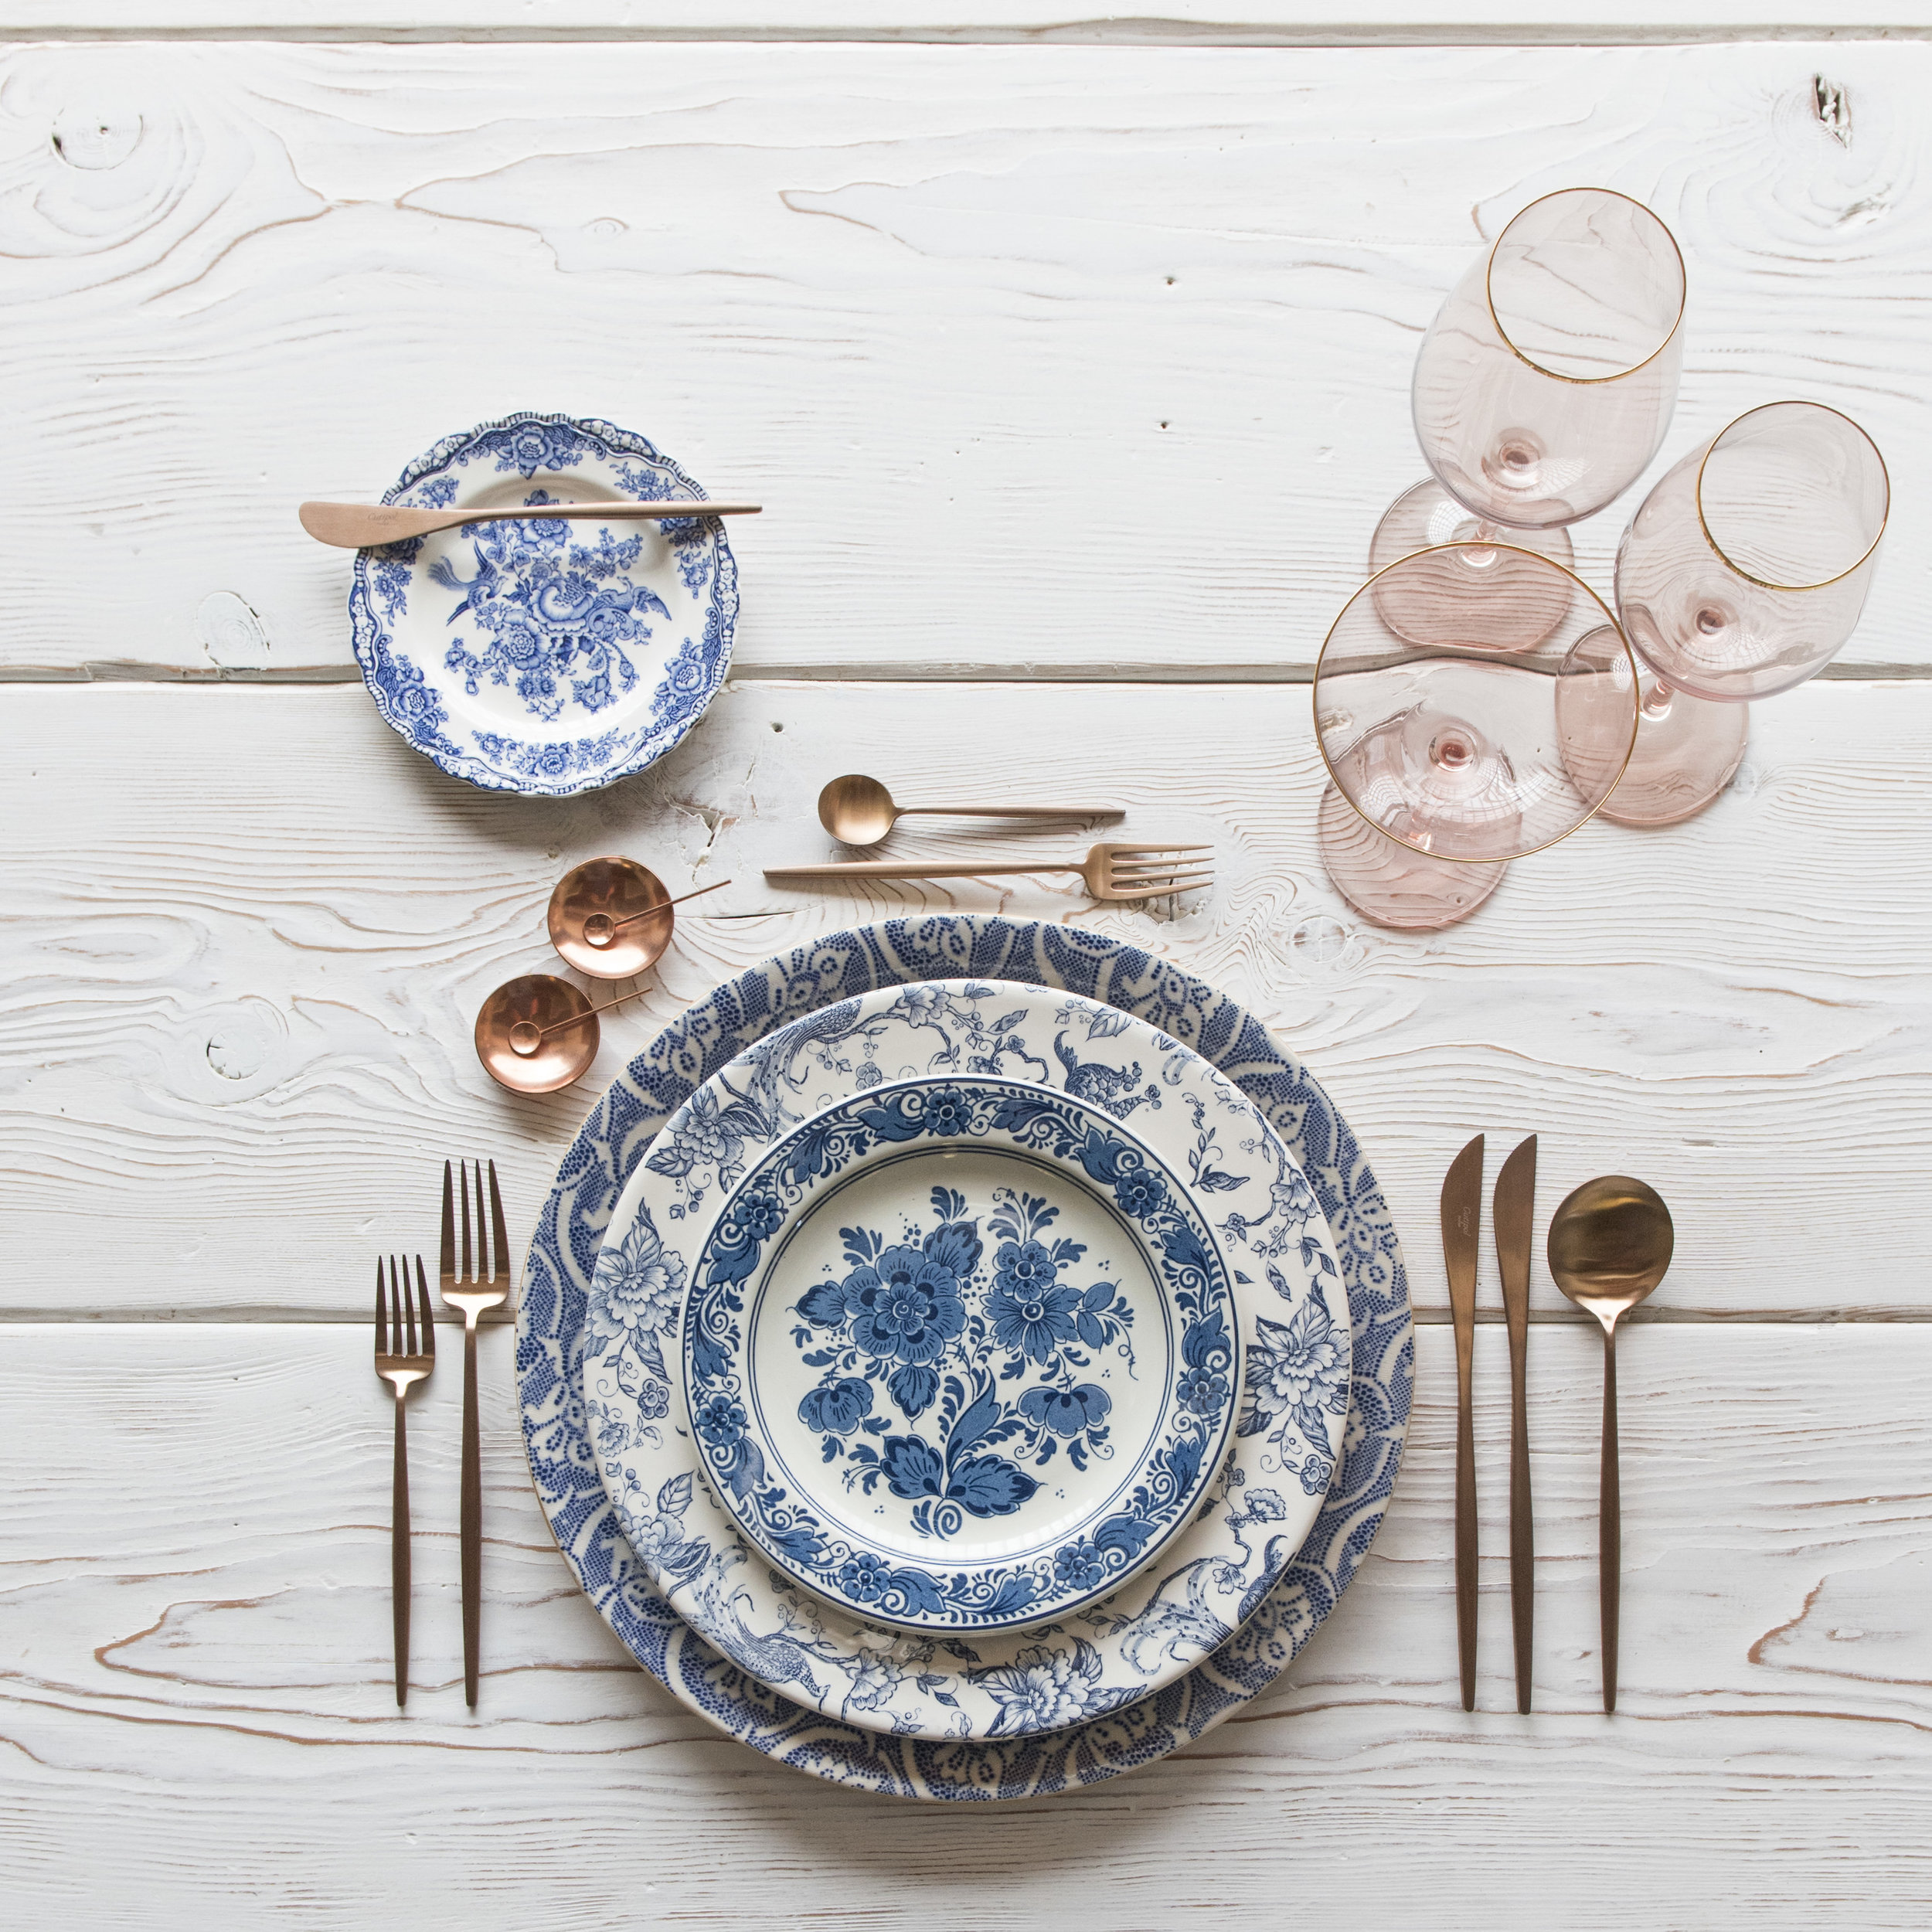 RENT: Blue Fleur de Lis Chargers + Blue Garden Collection Vintage China + Moon Flatware in Brushed Rose Gold + Bella 24k Gold Rimmed Stemware in Blush + Copper Salt Cellars + Tiny Copper Spoons   SHOP: Moon Flatware in Brushed Rose Gold + Bella 24k Gold Rimmed Stemware in Blush + Copper Salt Cellars + Tiny Copper Spoons